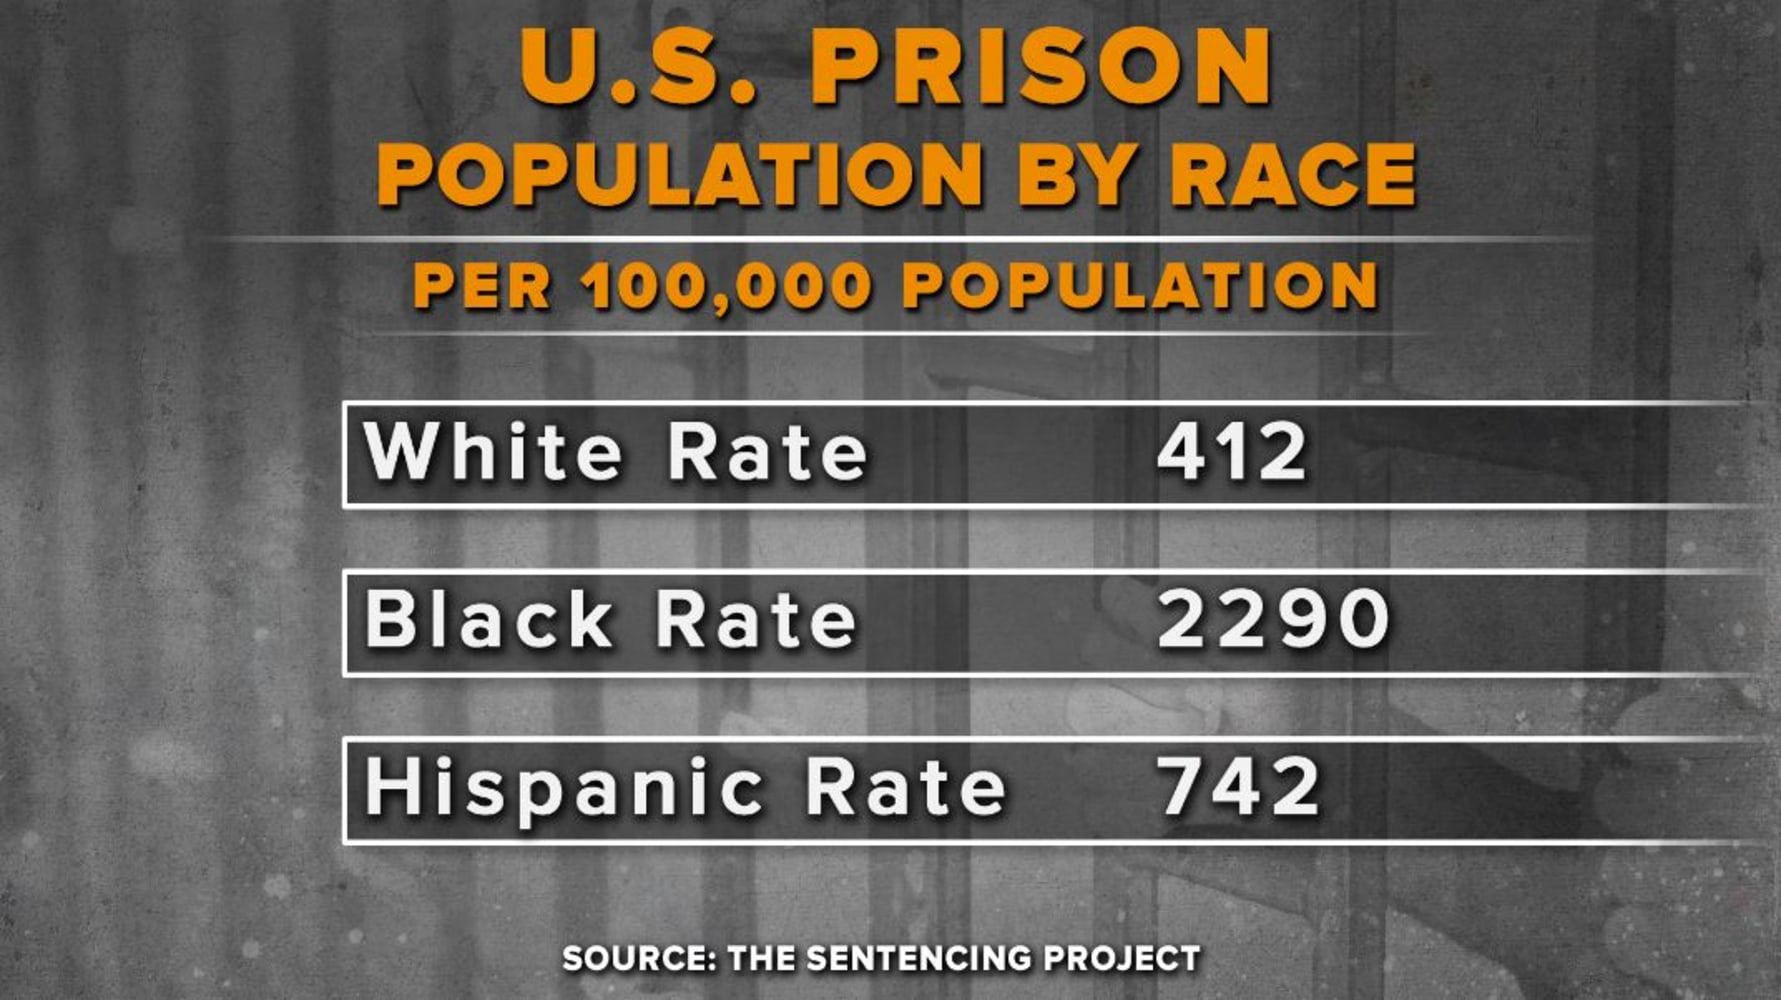 an introduction to the issue of prison population in america Today, people of color make up 37% of the us population but 67% of the prison population overall, african americans are more likely than white americans to be arrested once arrested, they are more likely to be convicted and once convicted, they are more likely to face stiff sentences.